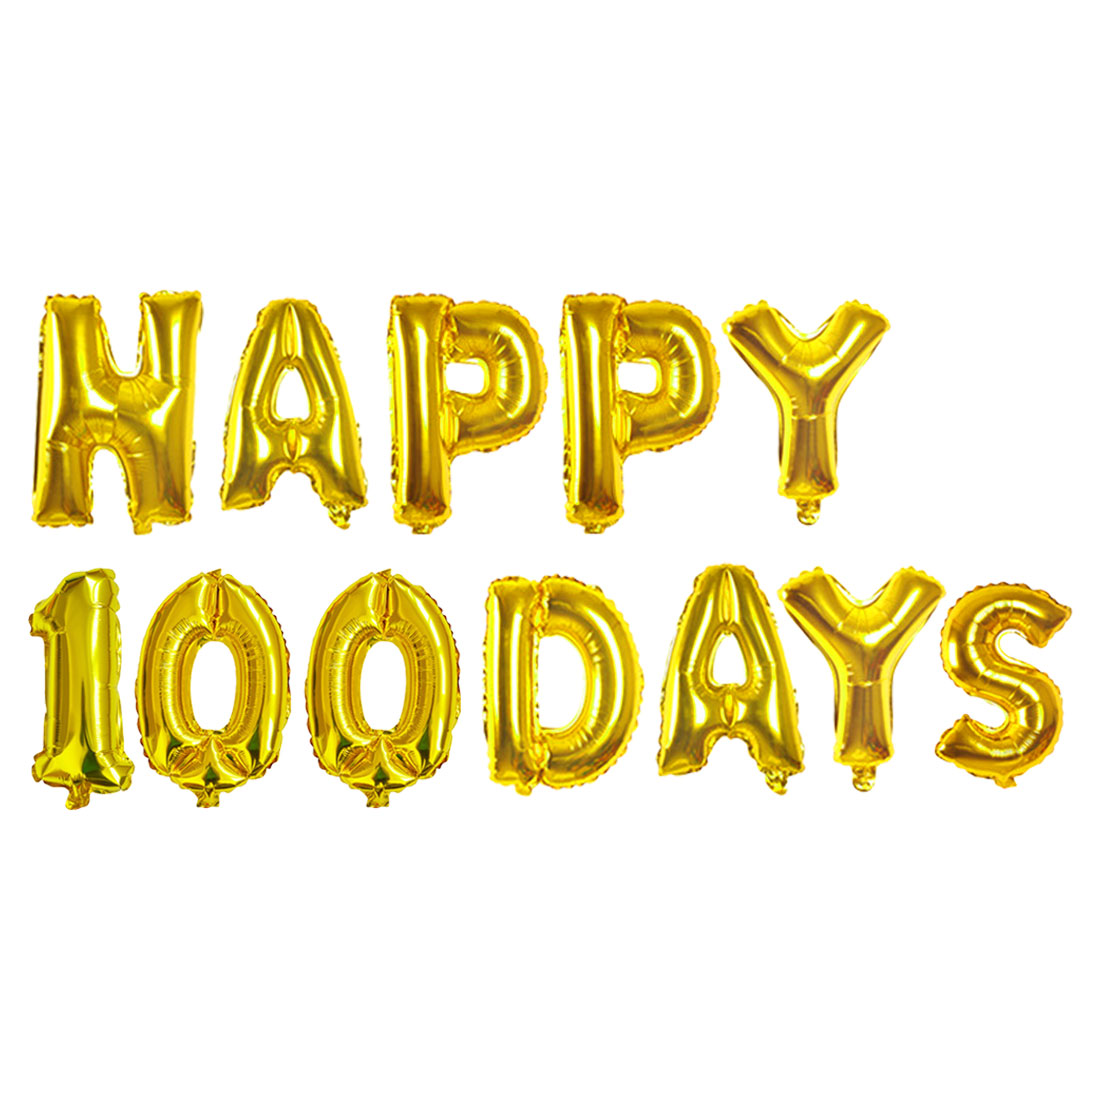 pop 16 inch foil letter balloons party decoration gold silver happy 30days happy 100days balloons anniversary decoration